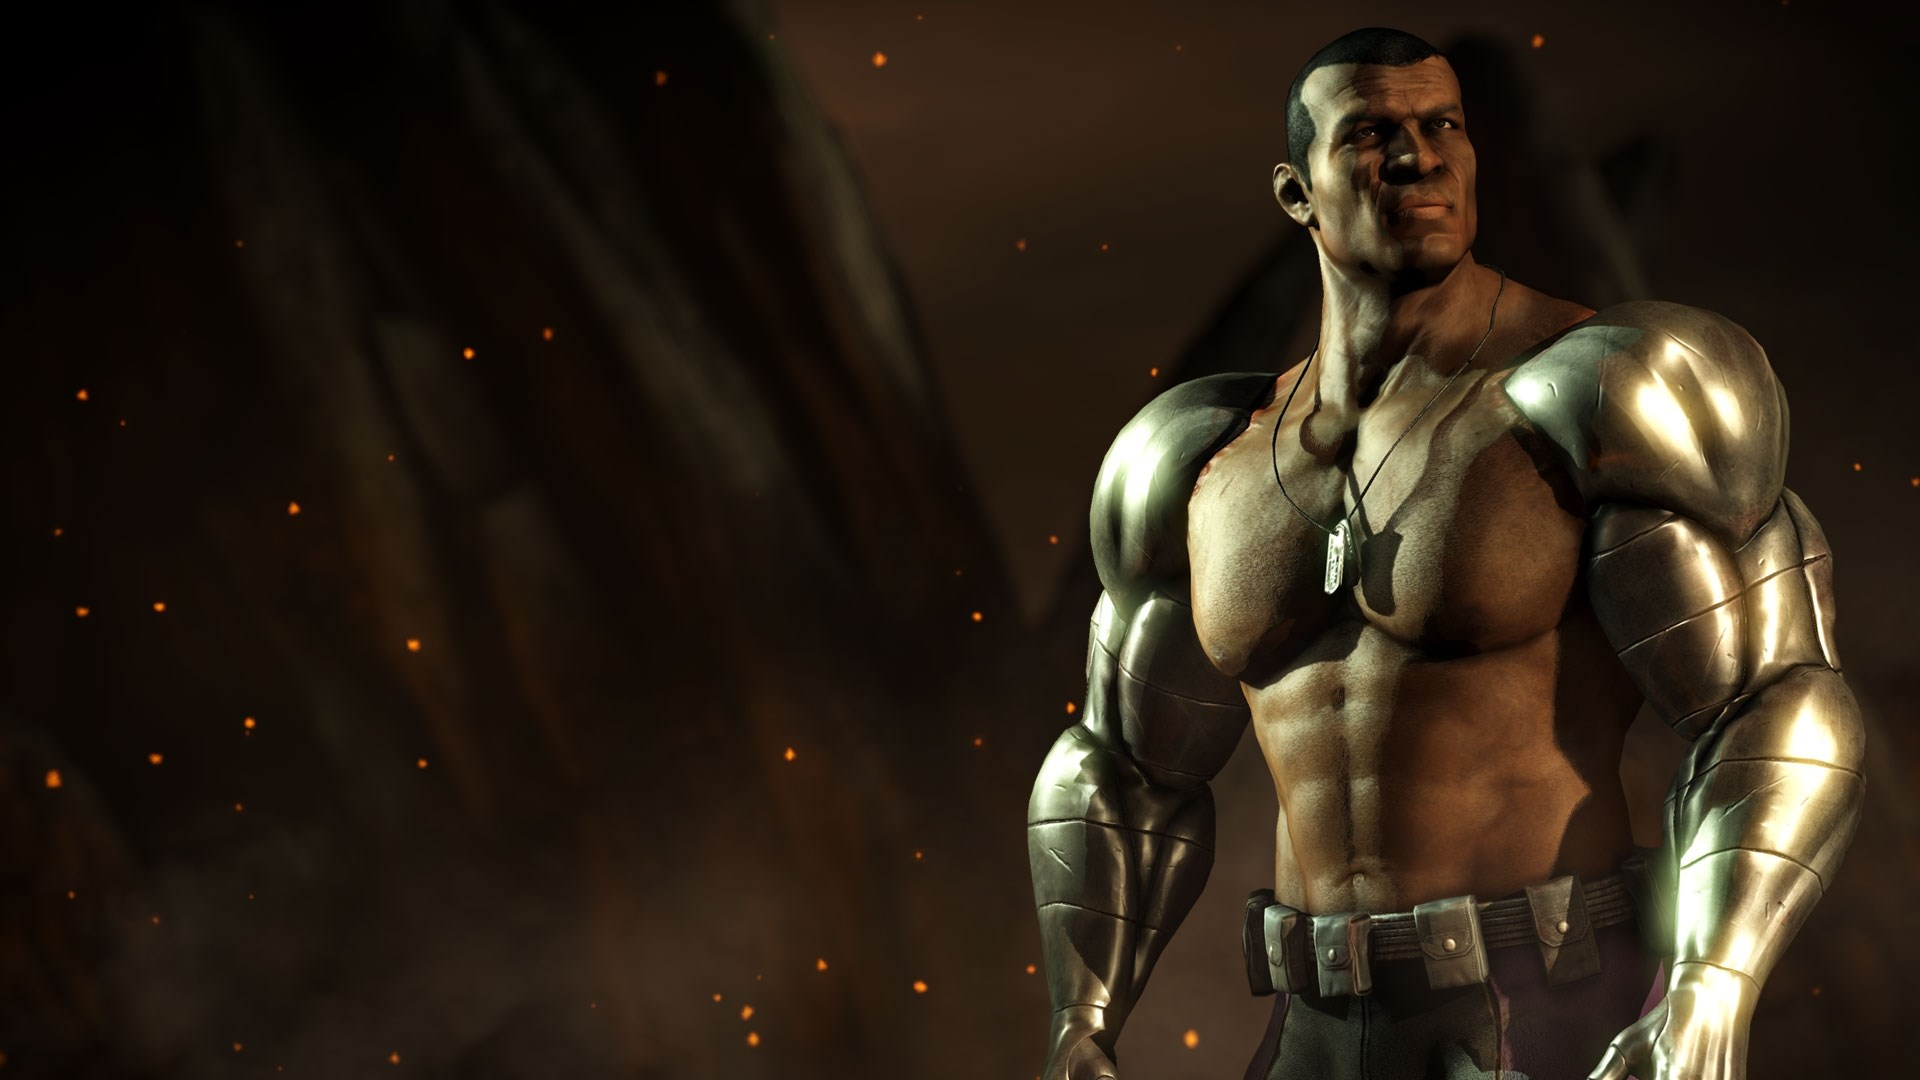 1920x1080-px-HDQ-Images-Mortal-Kombat-X-by-Barclay-Brian-for-TrunkWeed-com-wallpaper-wp380883